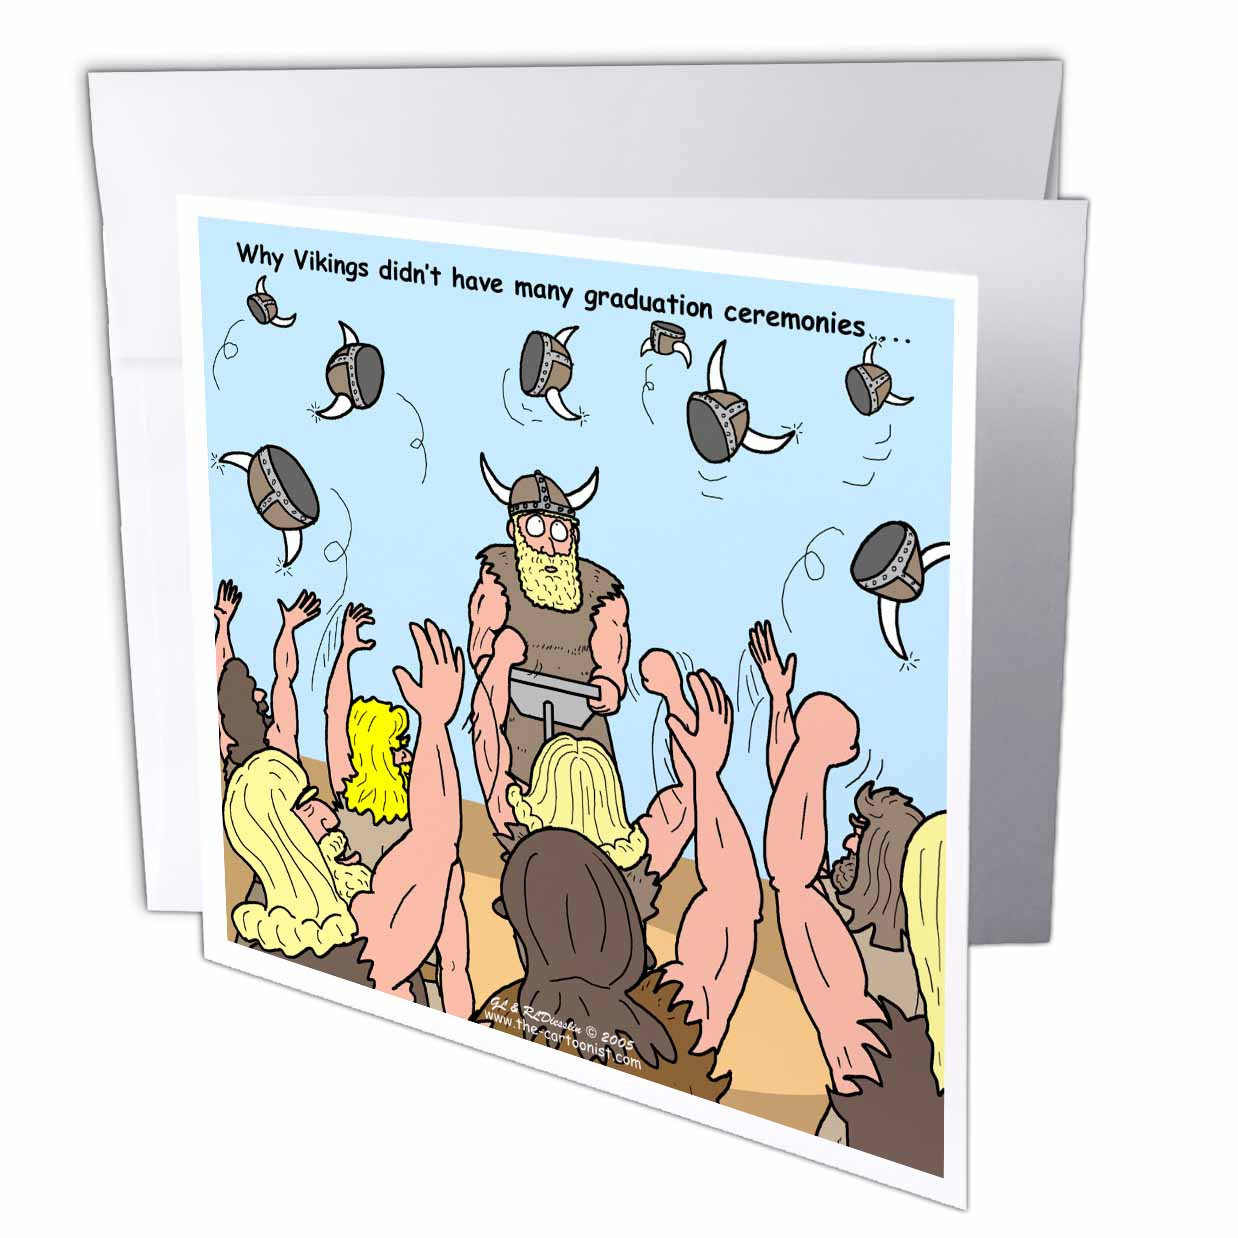 3dRose Why Vikings Didnt Have Many Graduation Ceremonies, Greeting Card, 6 x 6 inches, single